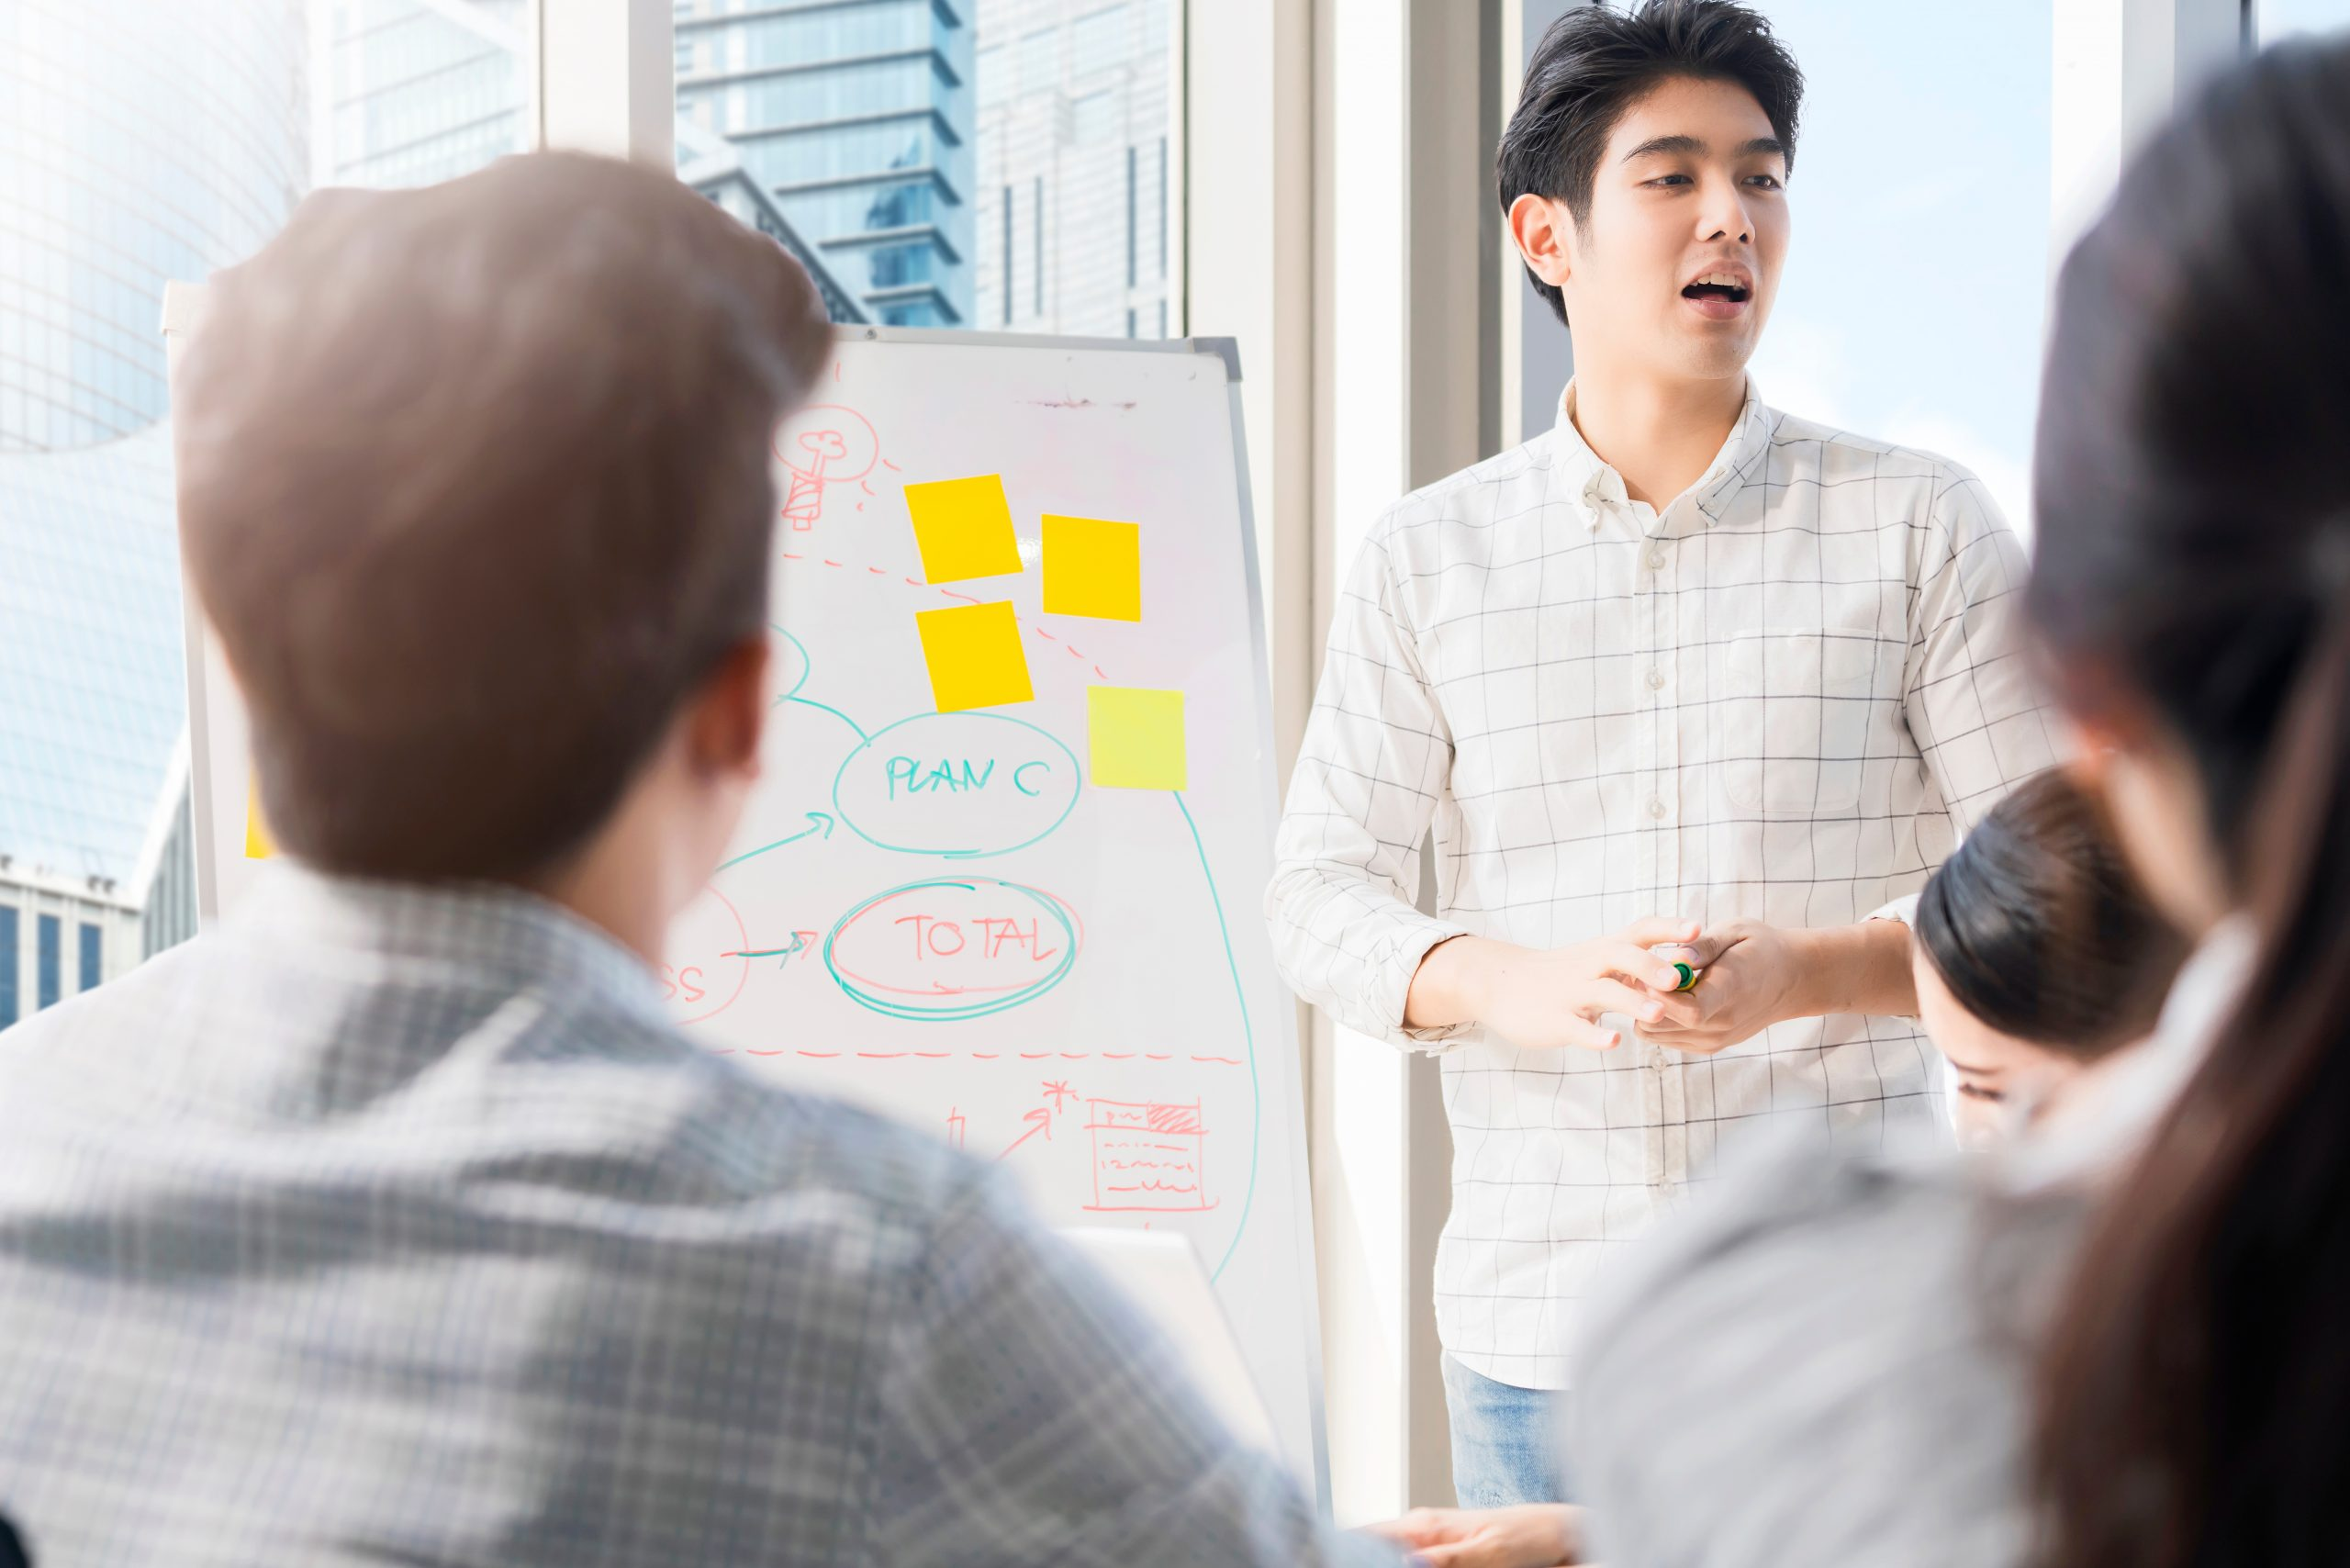 <h2><strong>How to Implement a Customer Training Program</strong></h2>